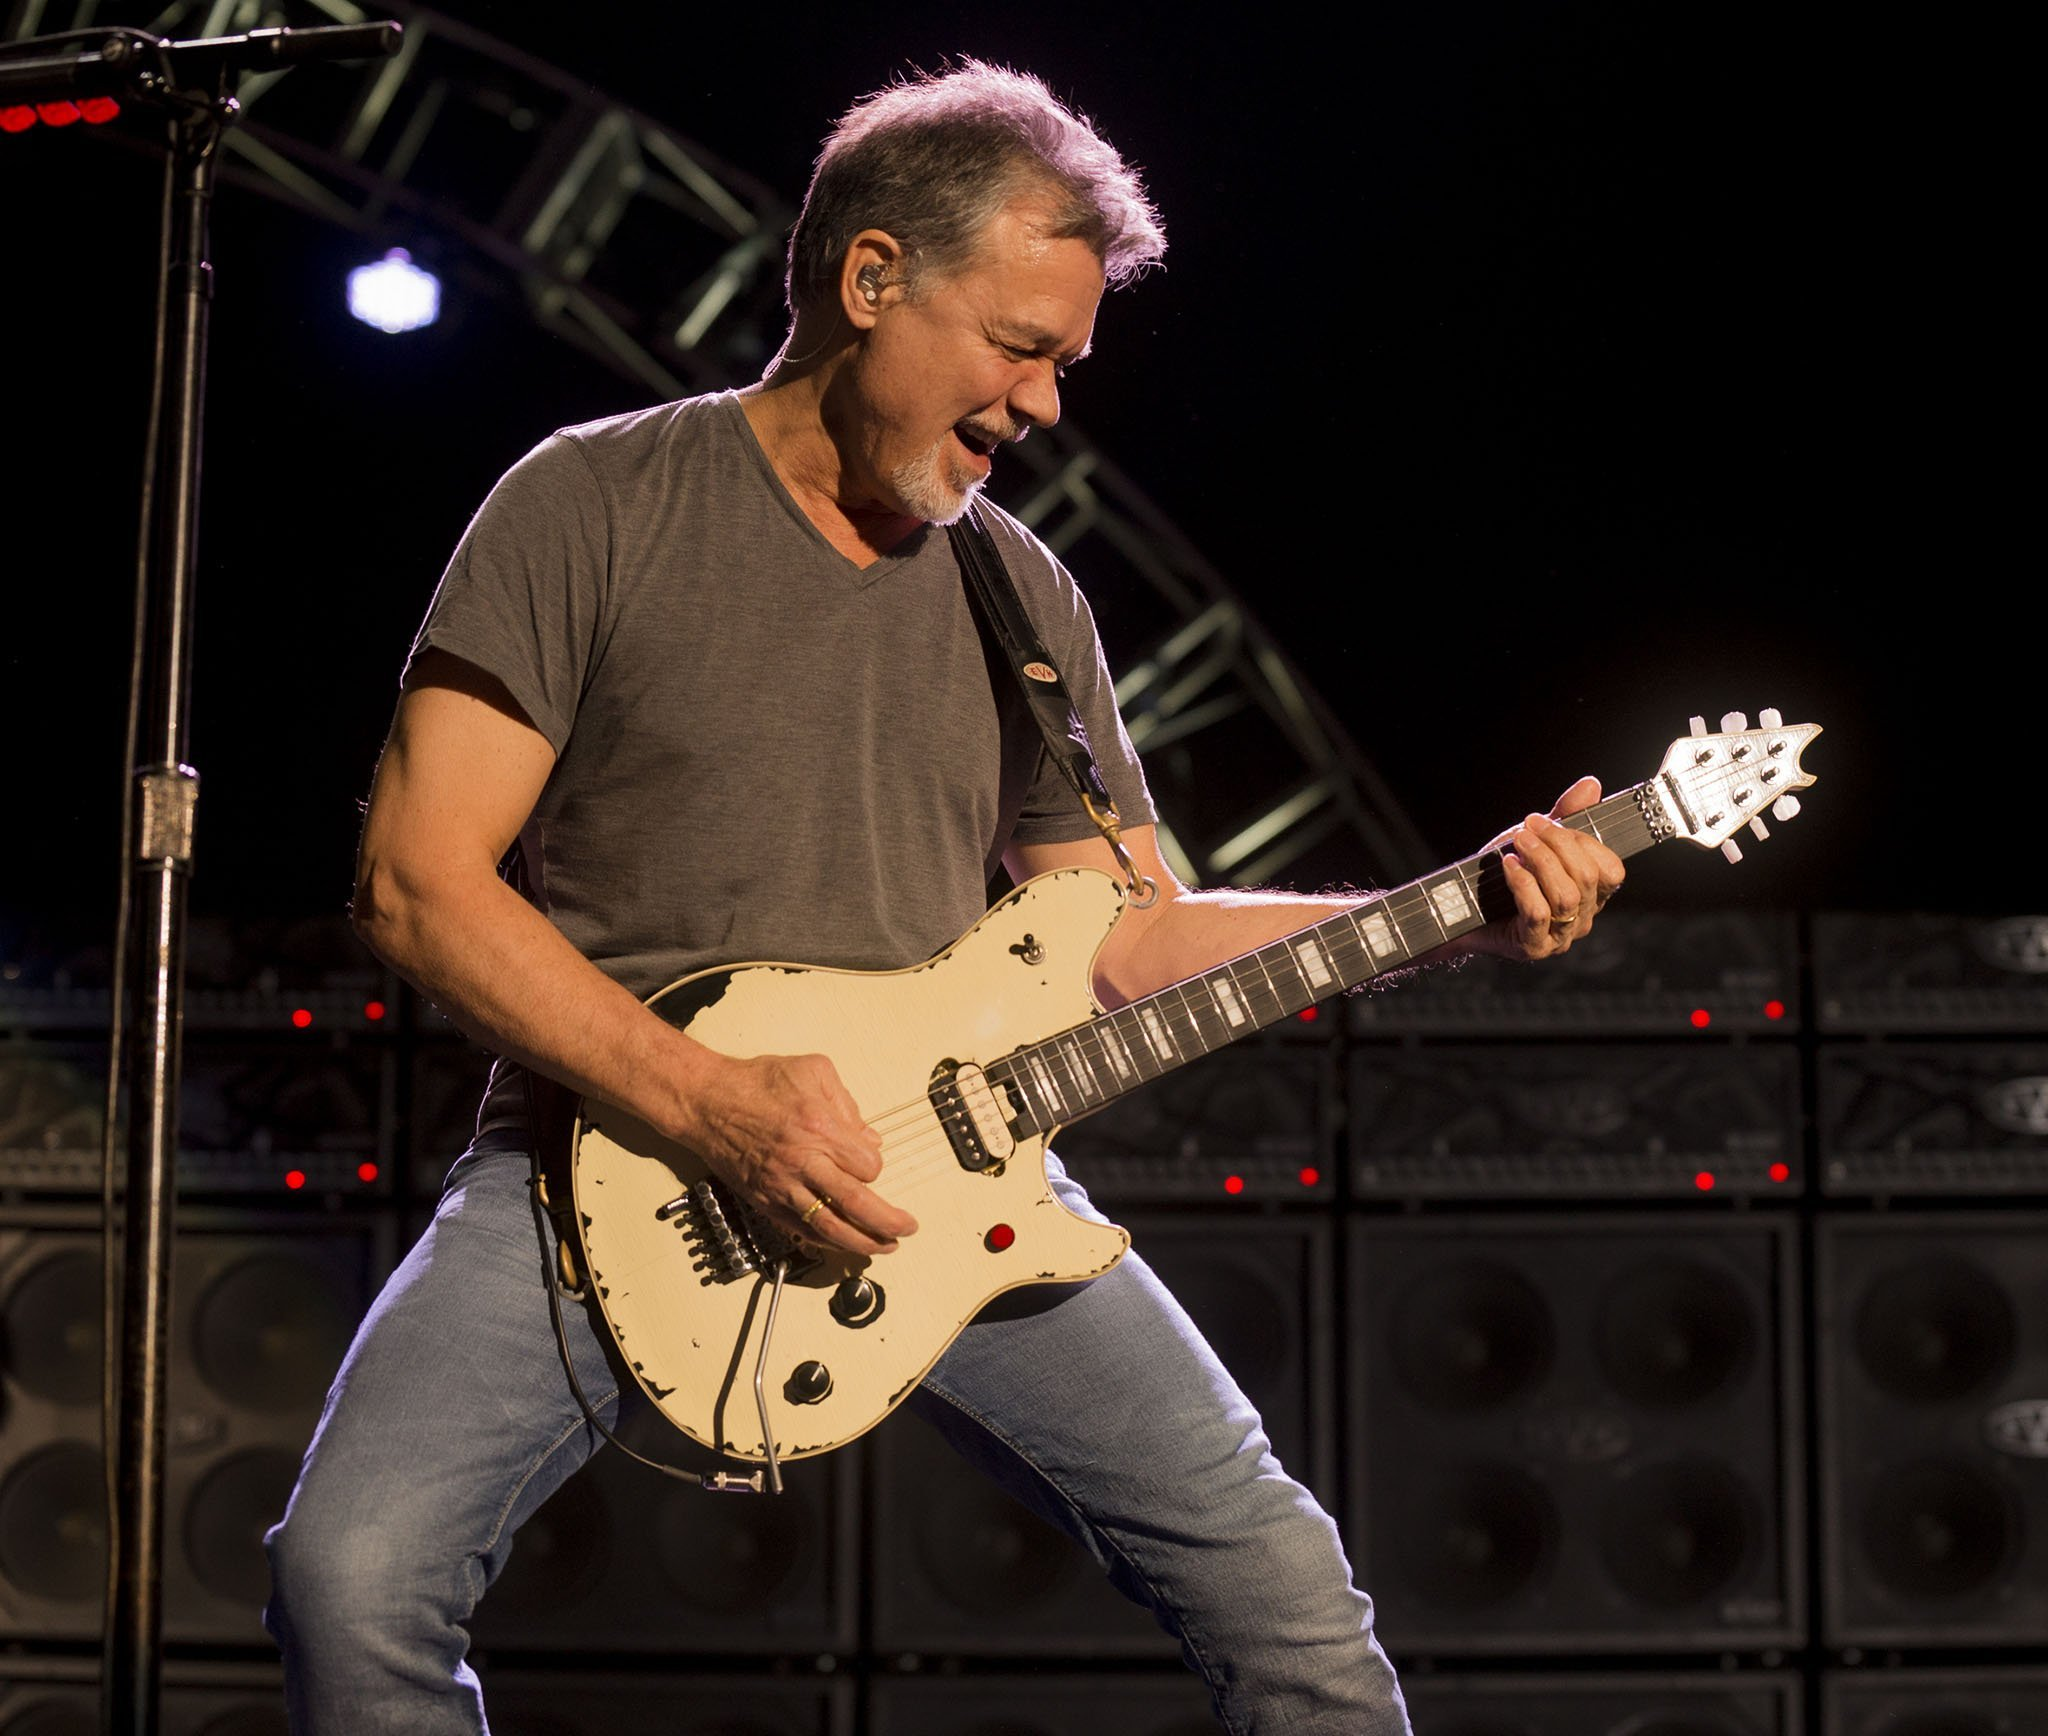 The late Eddie Van Halen, pictured in 2015, was diagnosed with tongue cancer in 2000